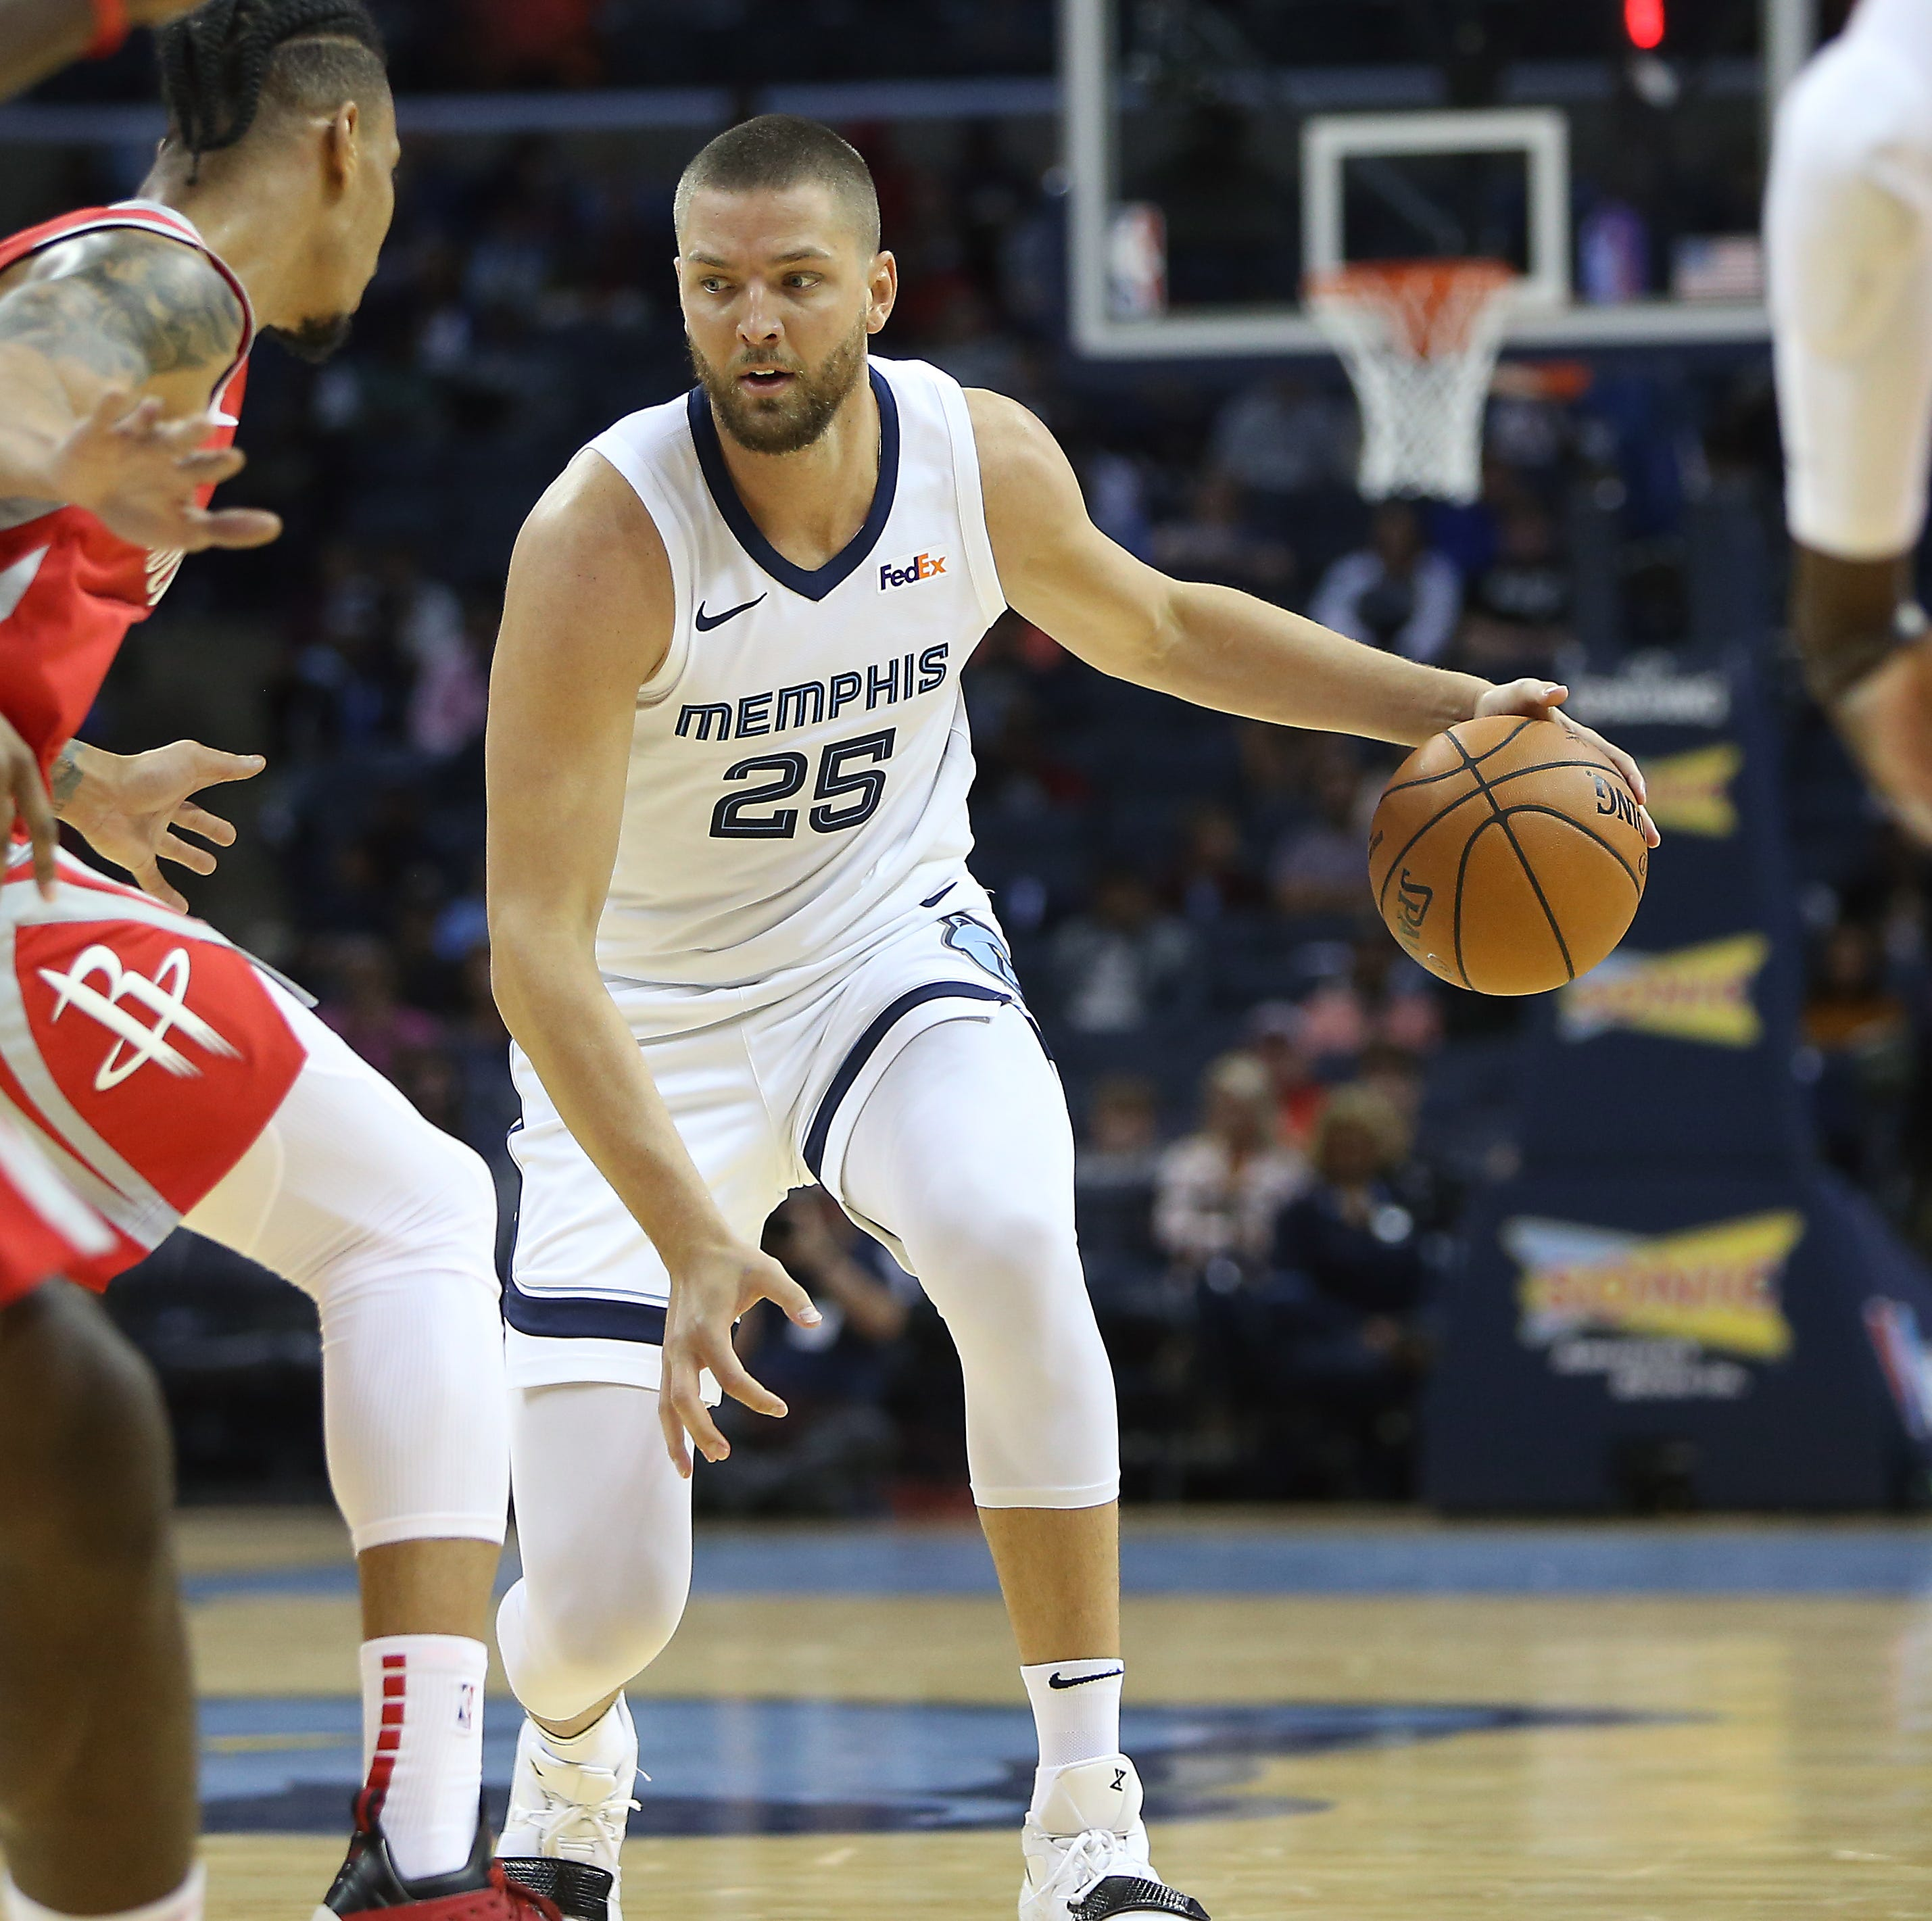 Grizzlies' Chandler Parsons will 'get minutes like everybody else'